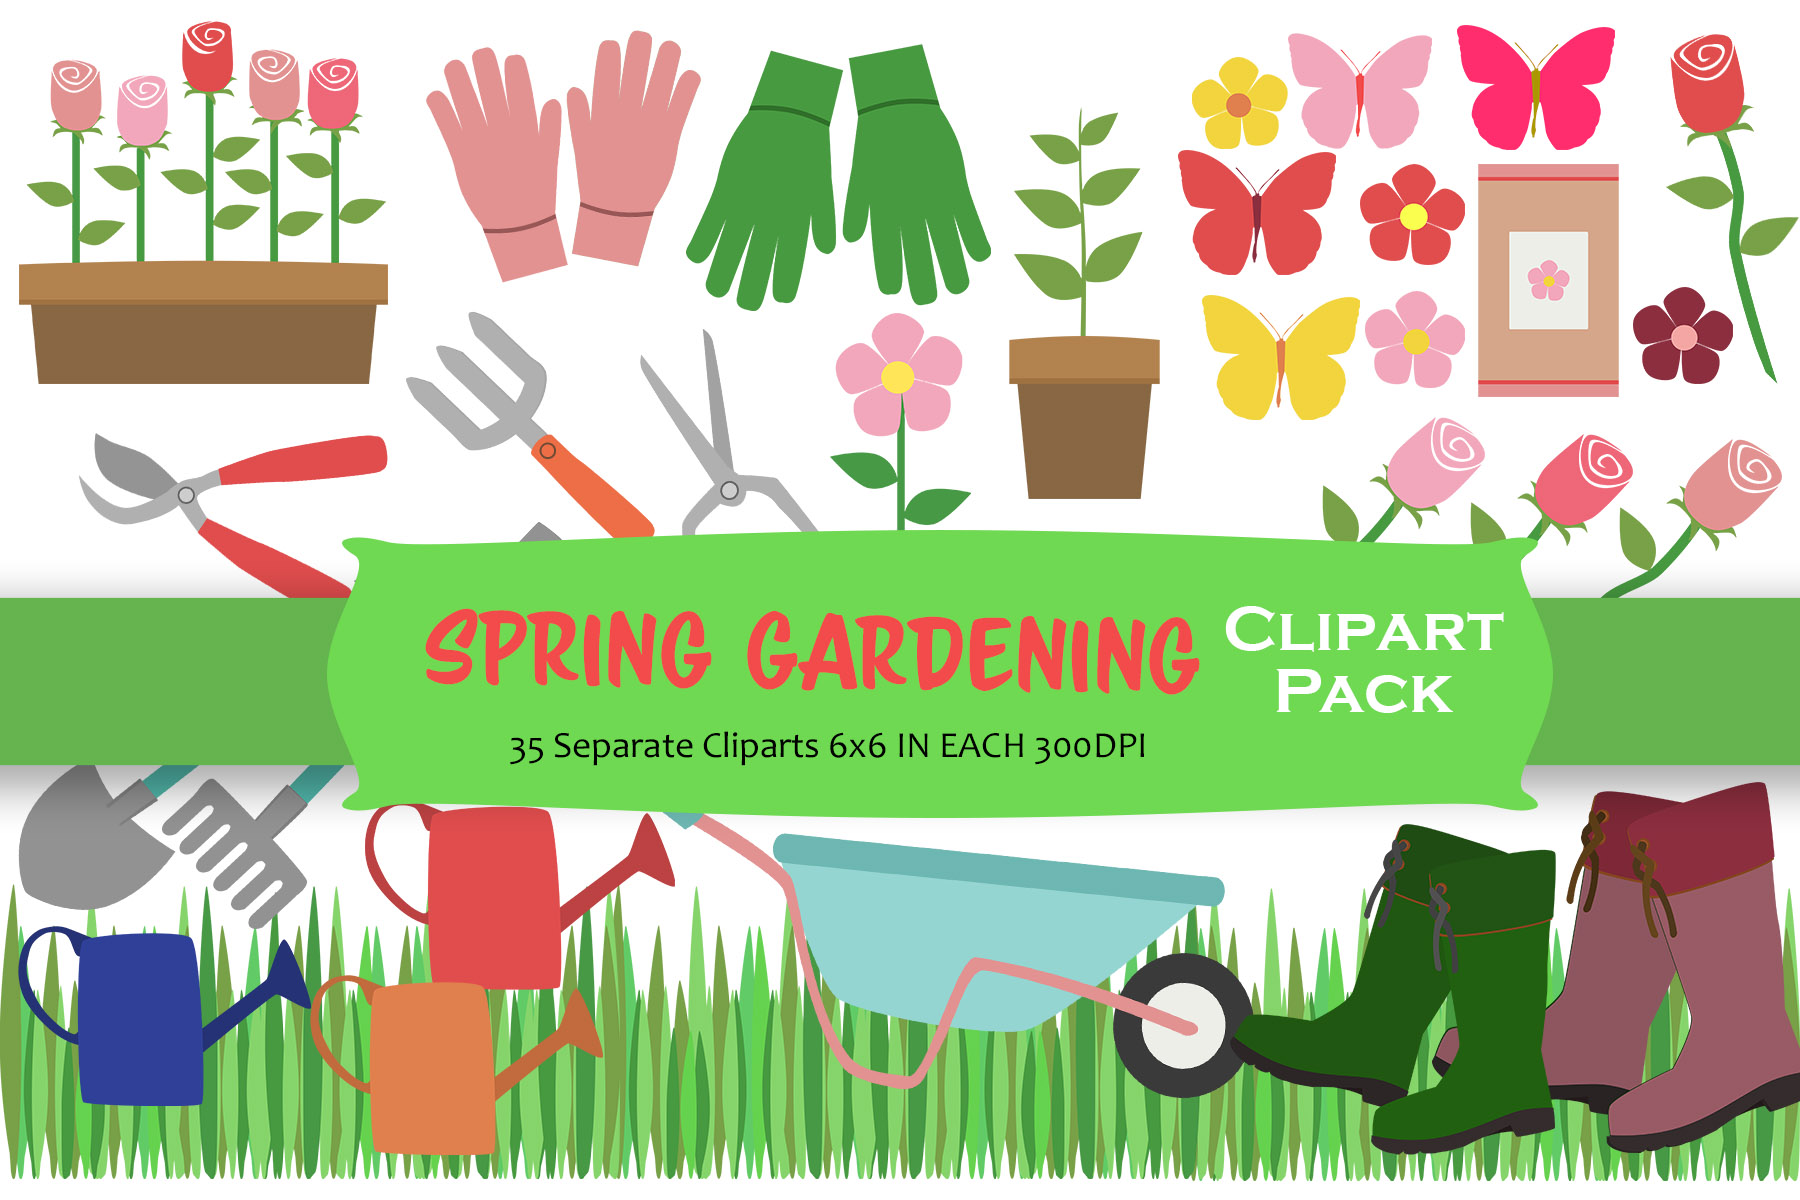 Spring Gardening Clipart Pack example image 1